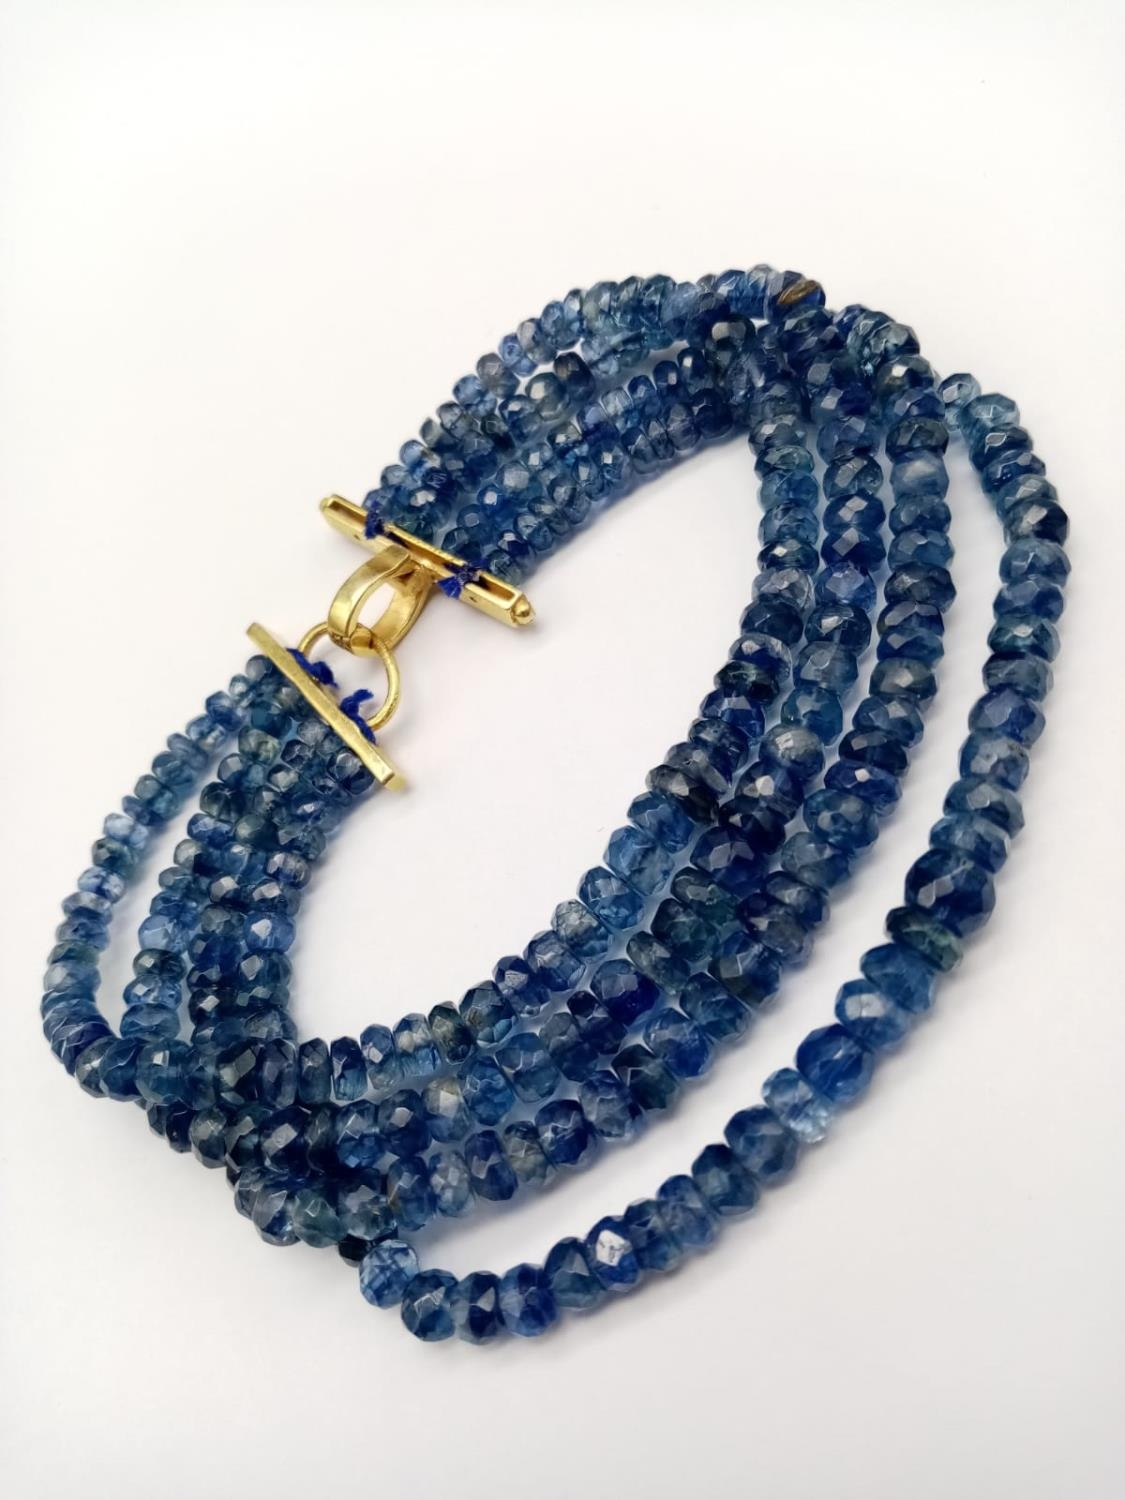 A 4 rows of Kyanite Gemstone Beads Bracelet with Gold Plated Diamond Clasp, 170cts of kyanites, 0.